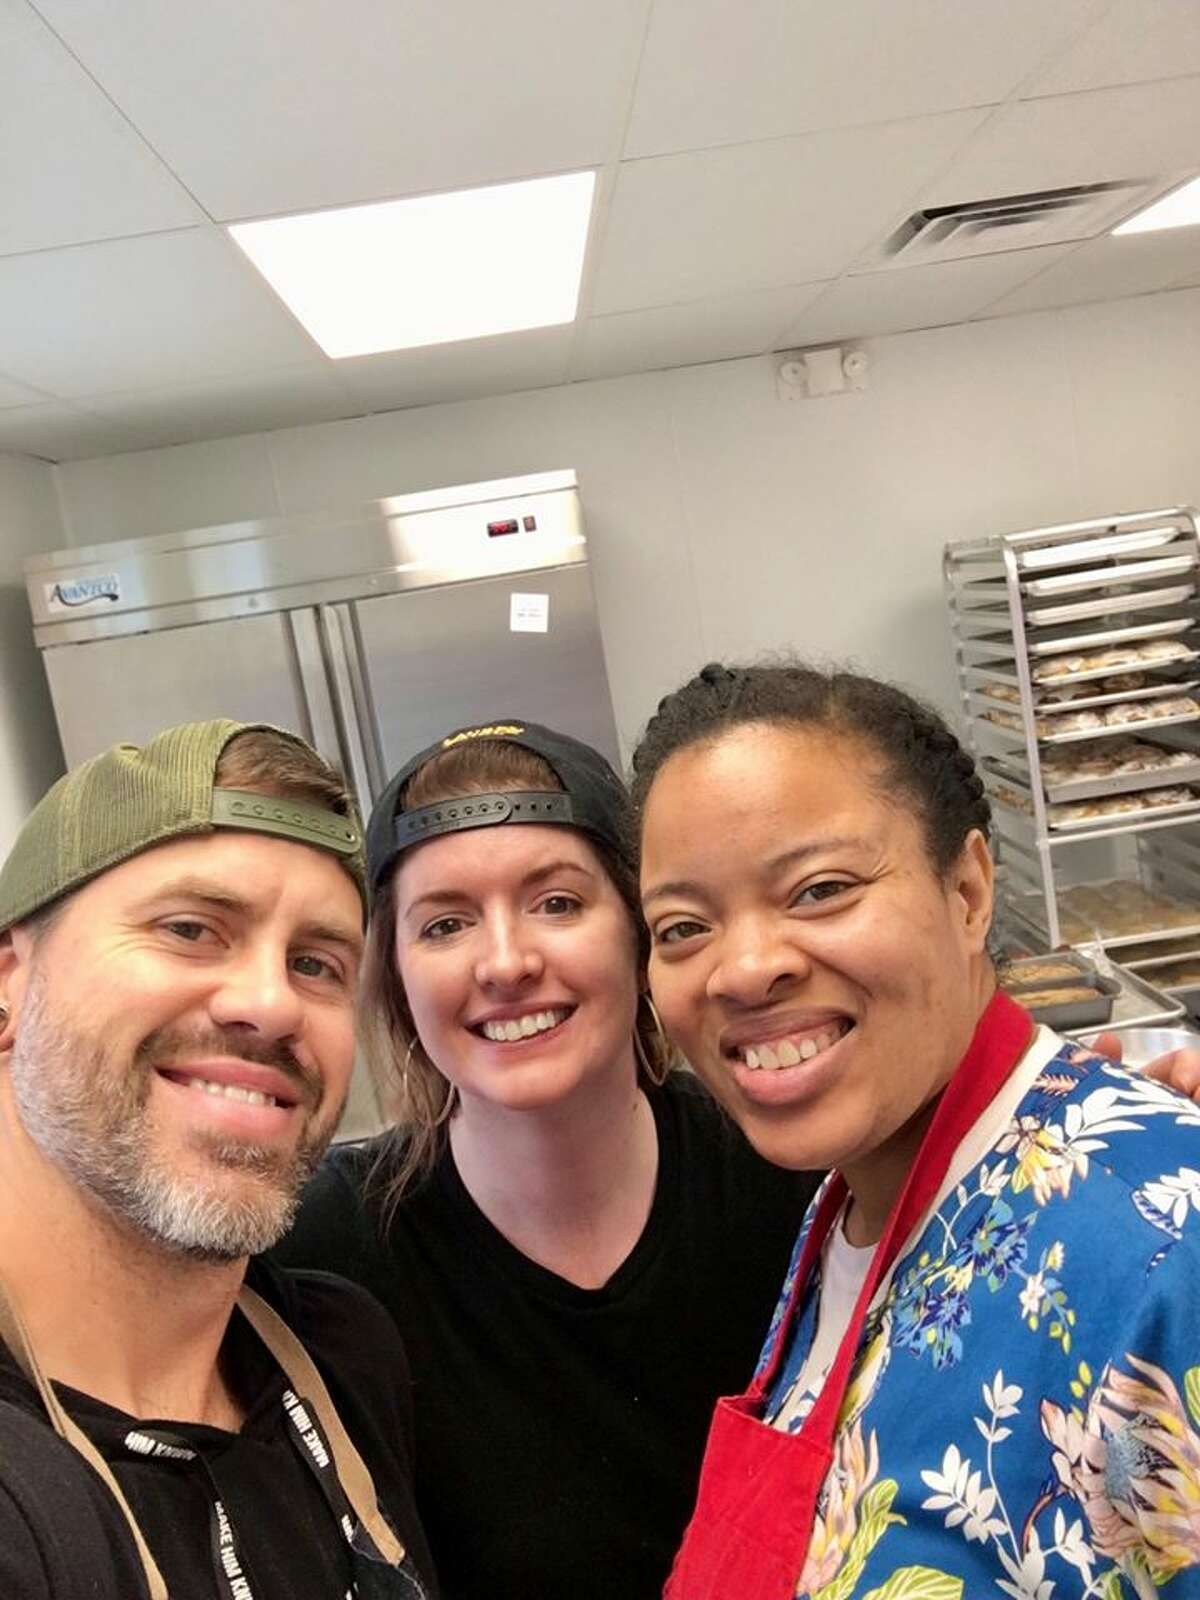 After Bear Fruit Bakery's success, Stafford said that bakery ended up giving away $30,000 to other struggling businesses in the last few weeks. After such a significant commitment, the couple has decided to stem the cash donations, but give back in other ways, through different platforms to help their neighbors.